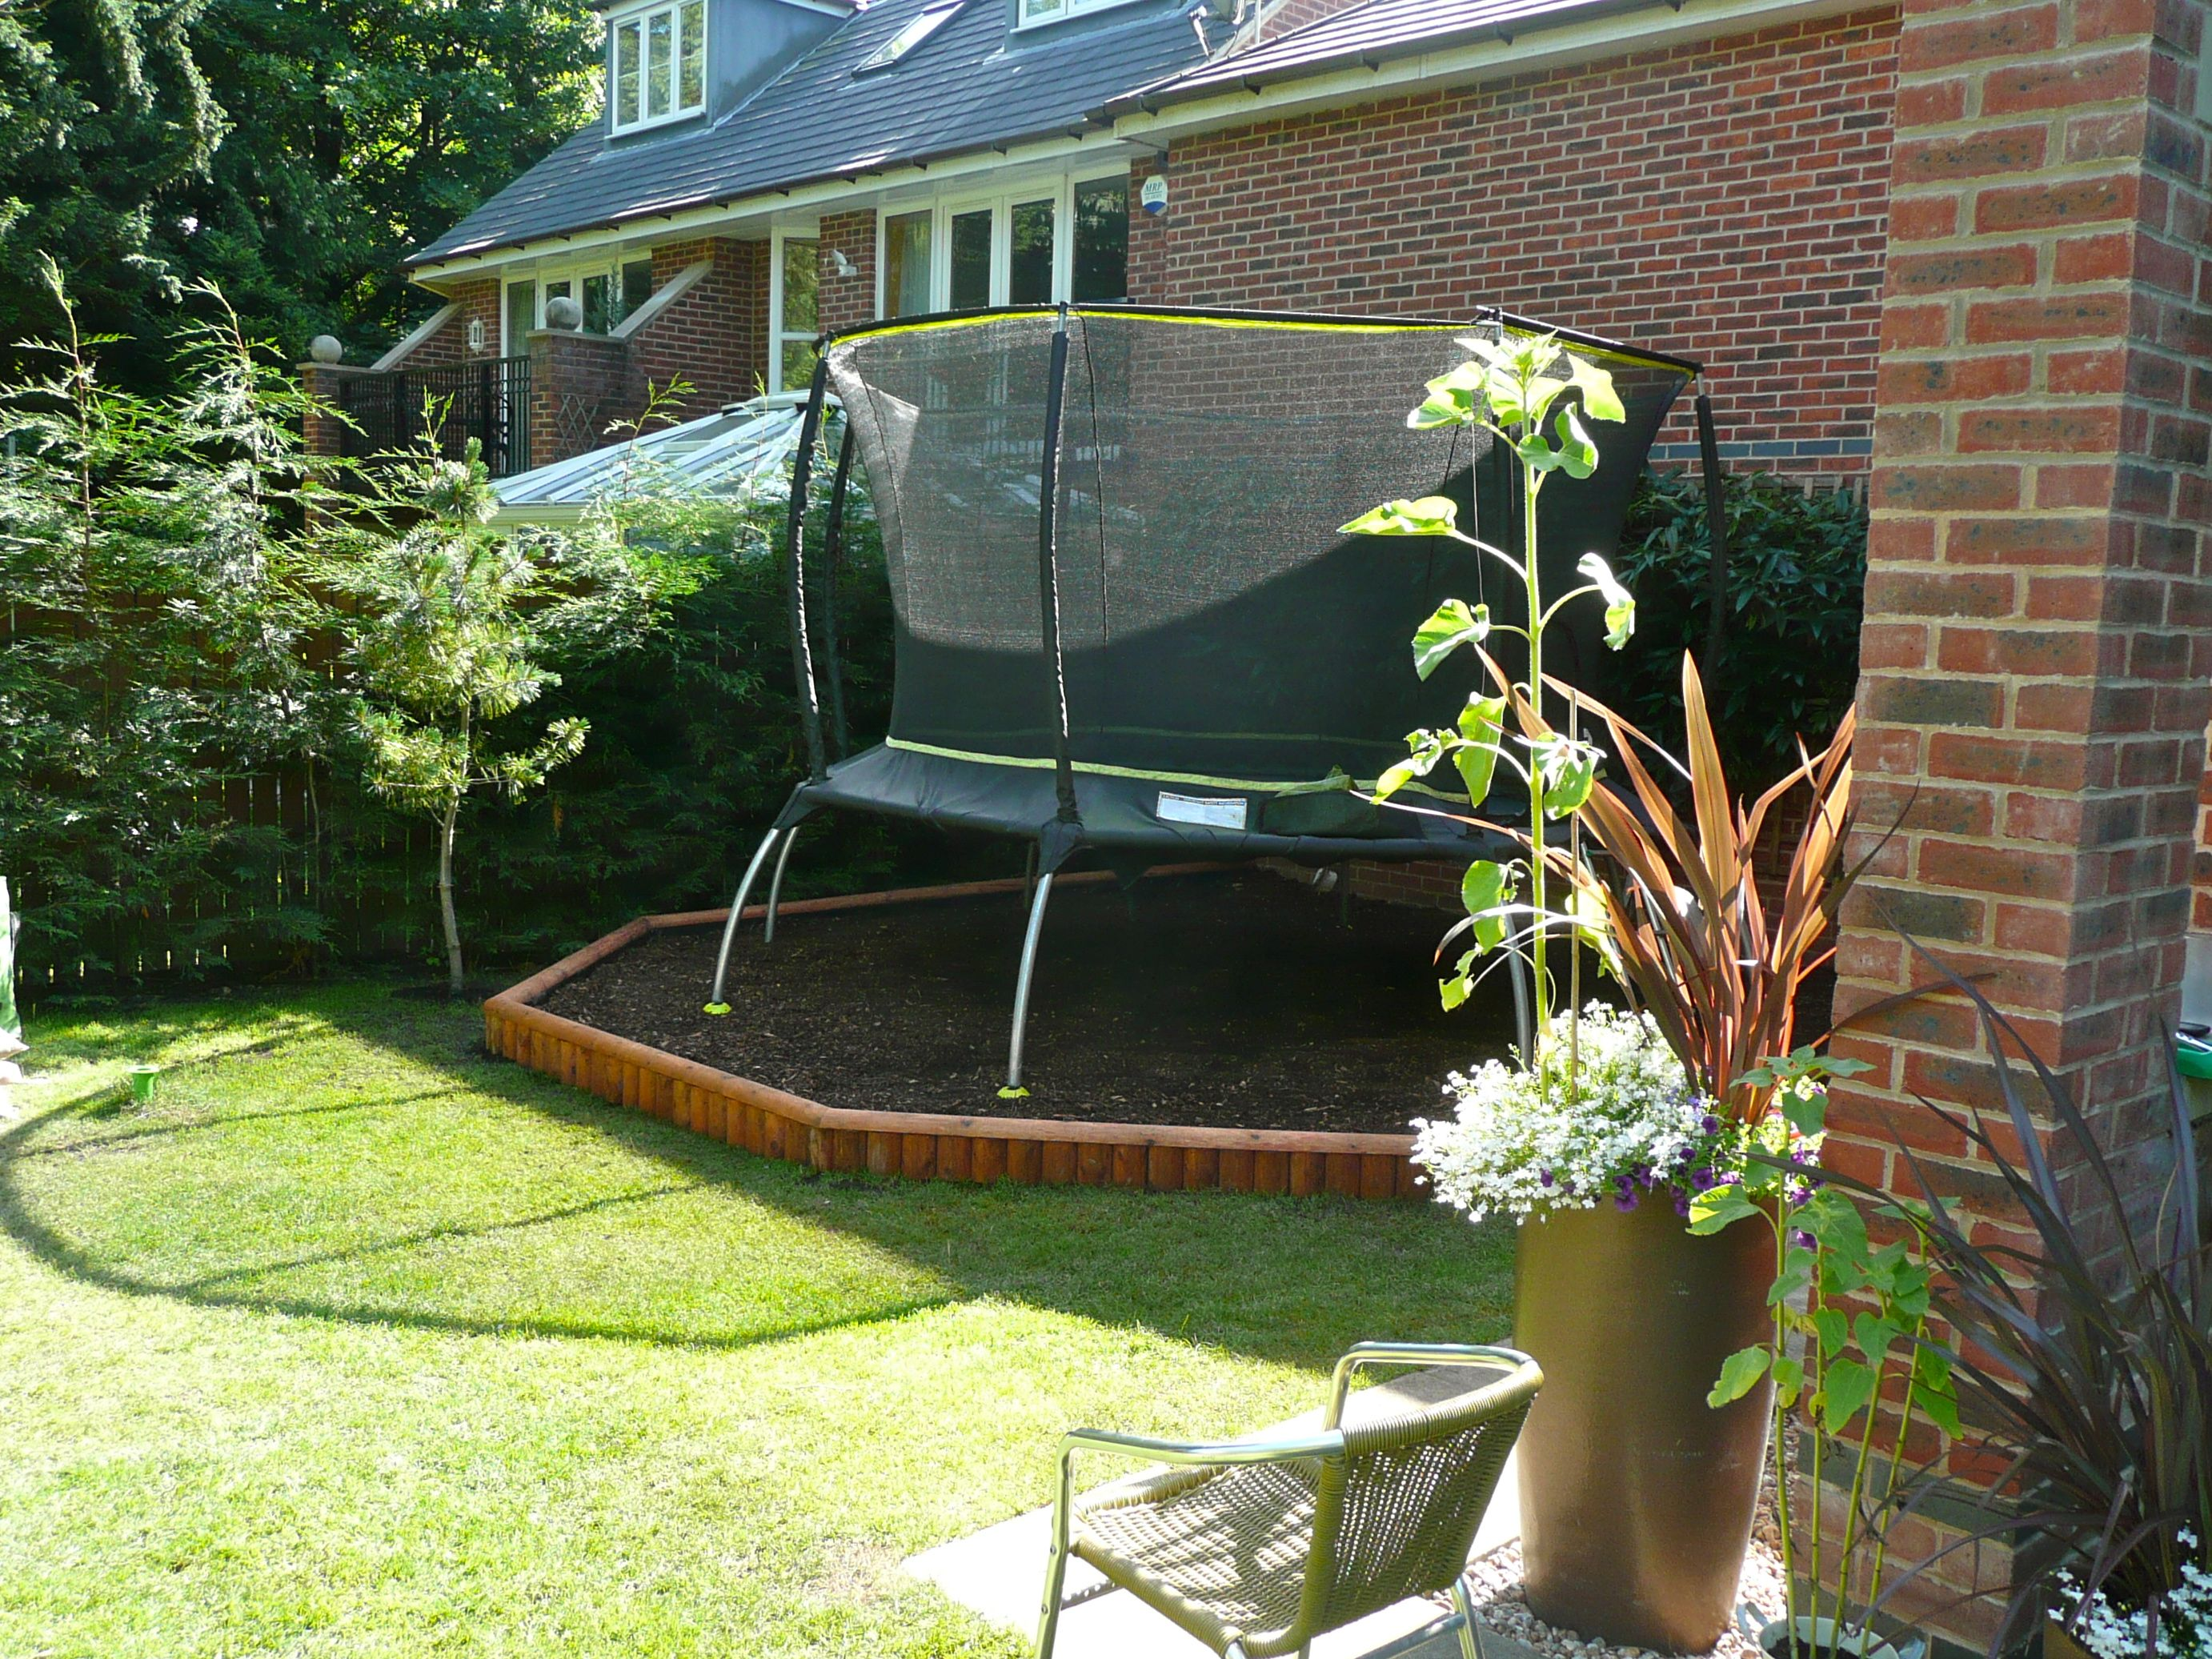 Landscape Under Trampoline Google Search Backyard Toys Small Landscaping Patio